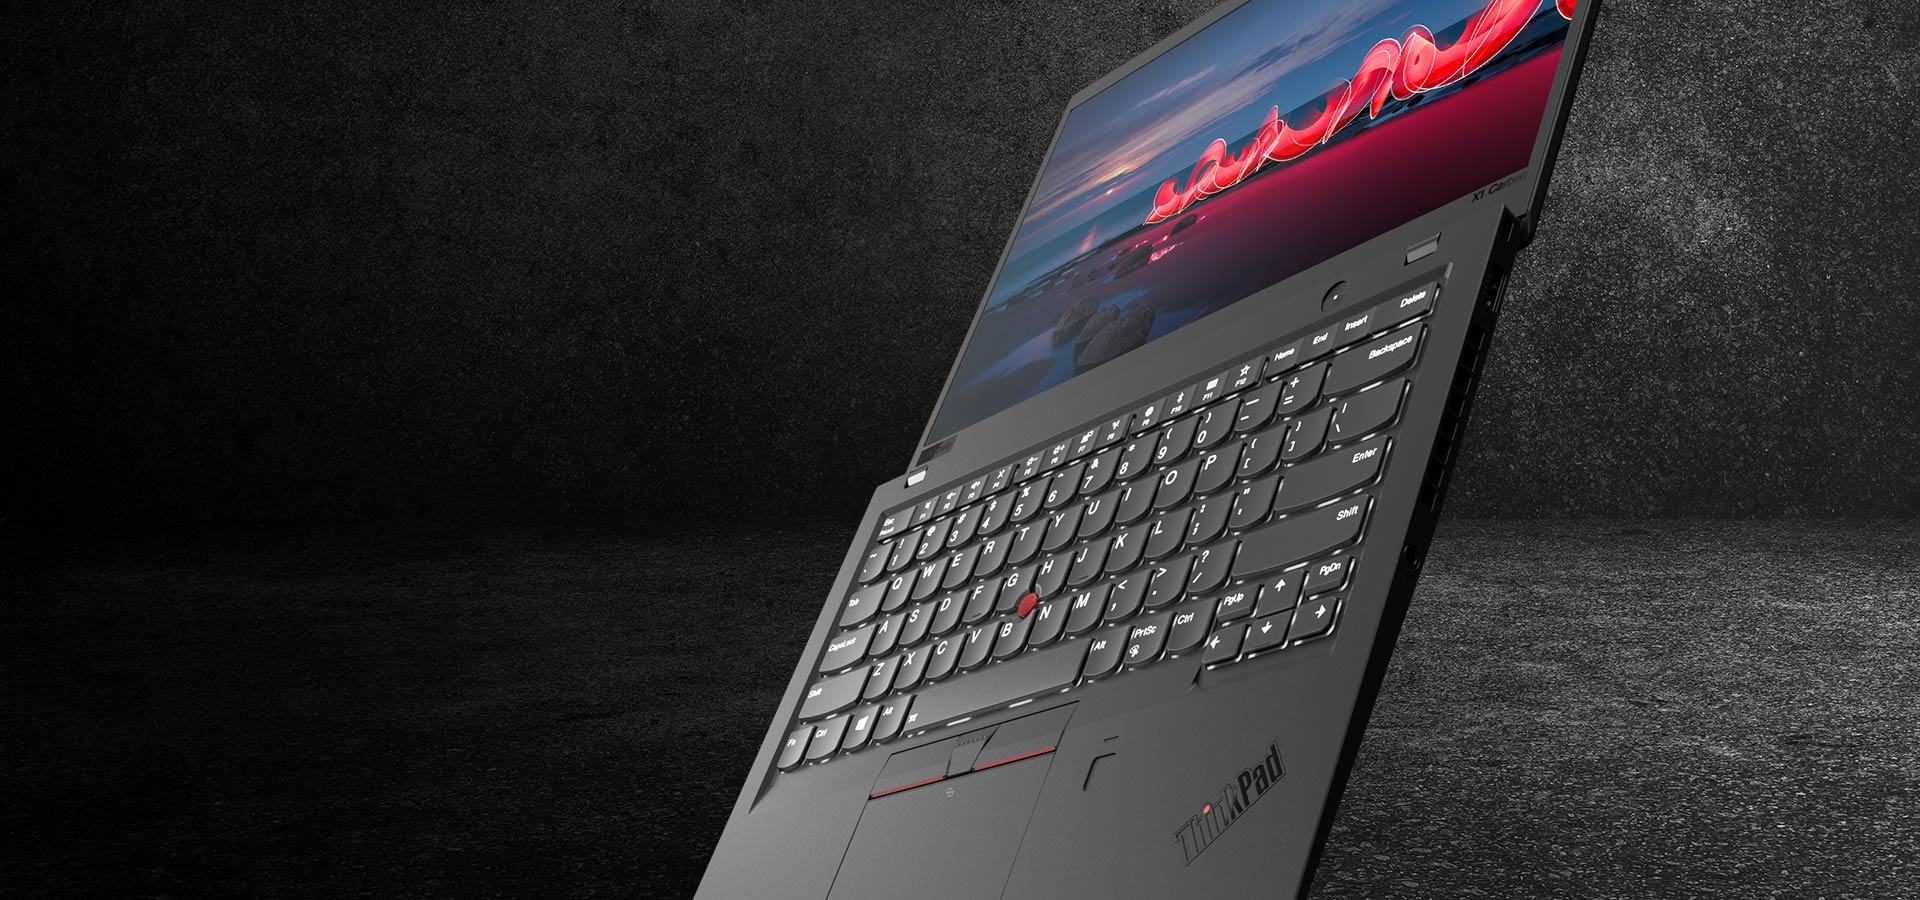 Lenovo ThinkPad X1 Carbon Gen 7 Laptop